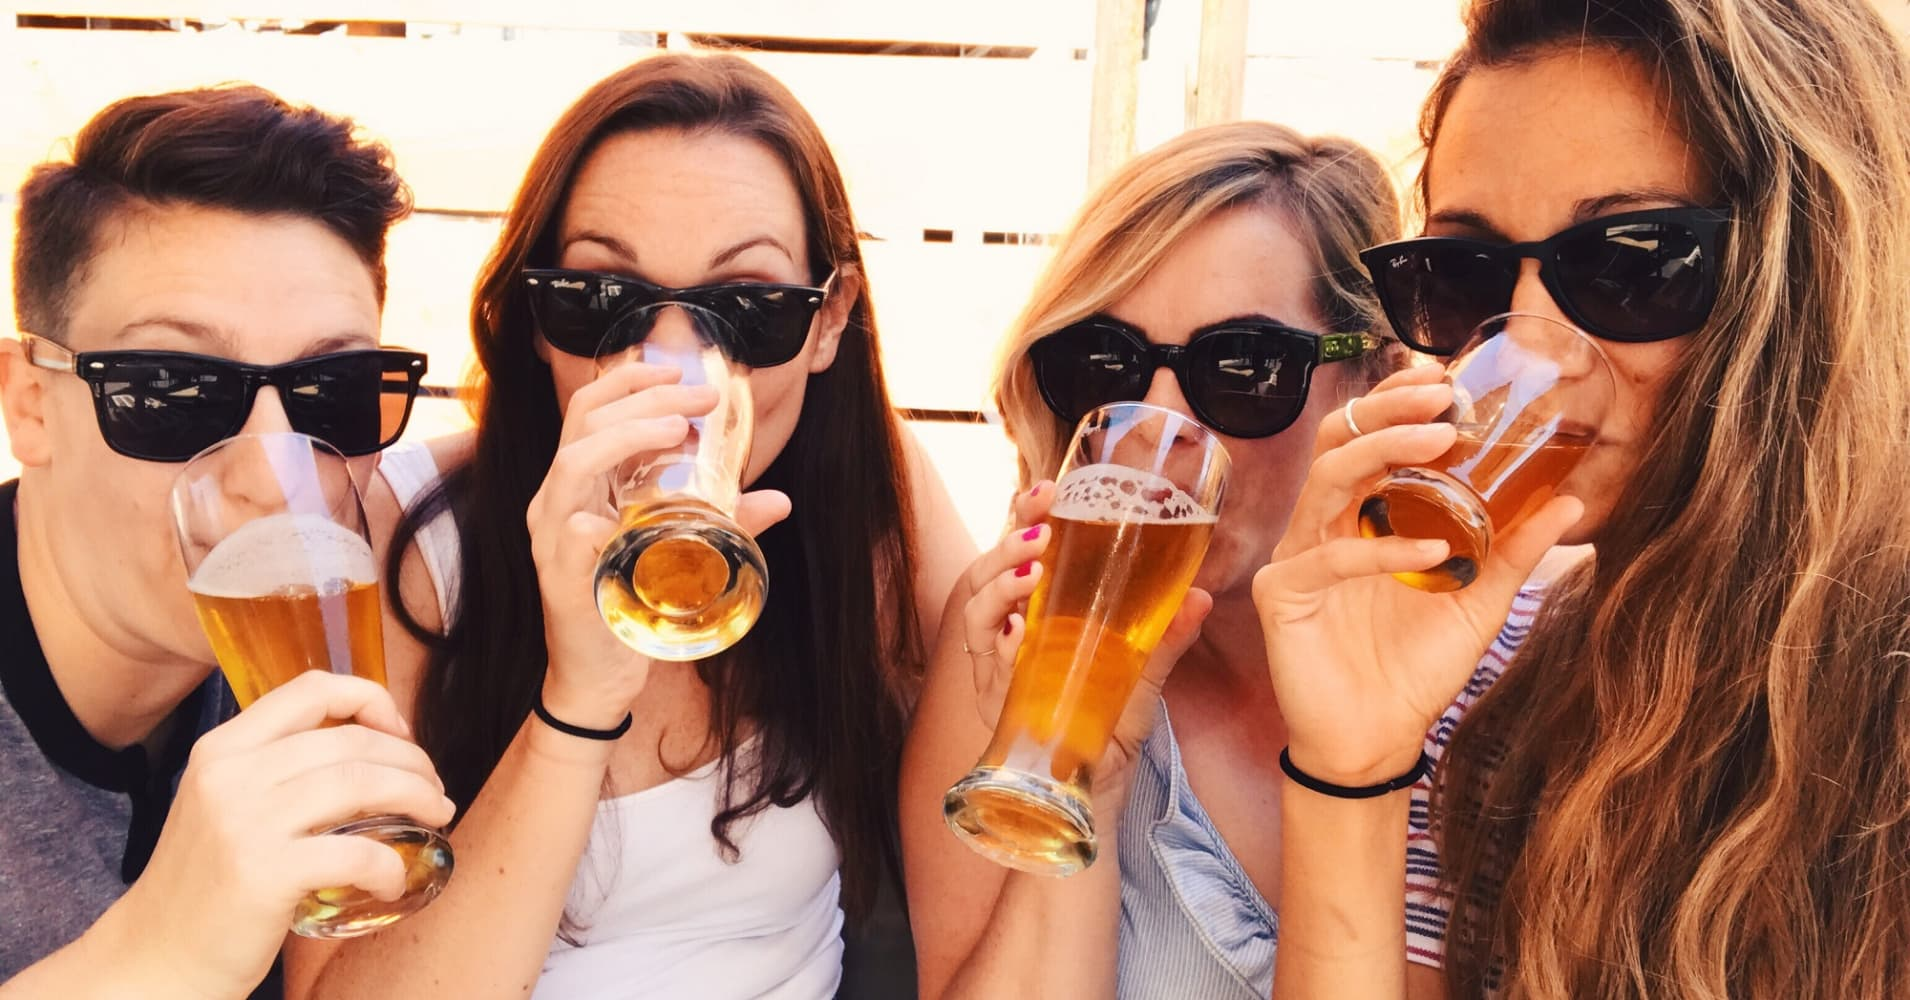 Young people drinking beer.